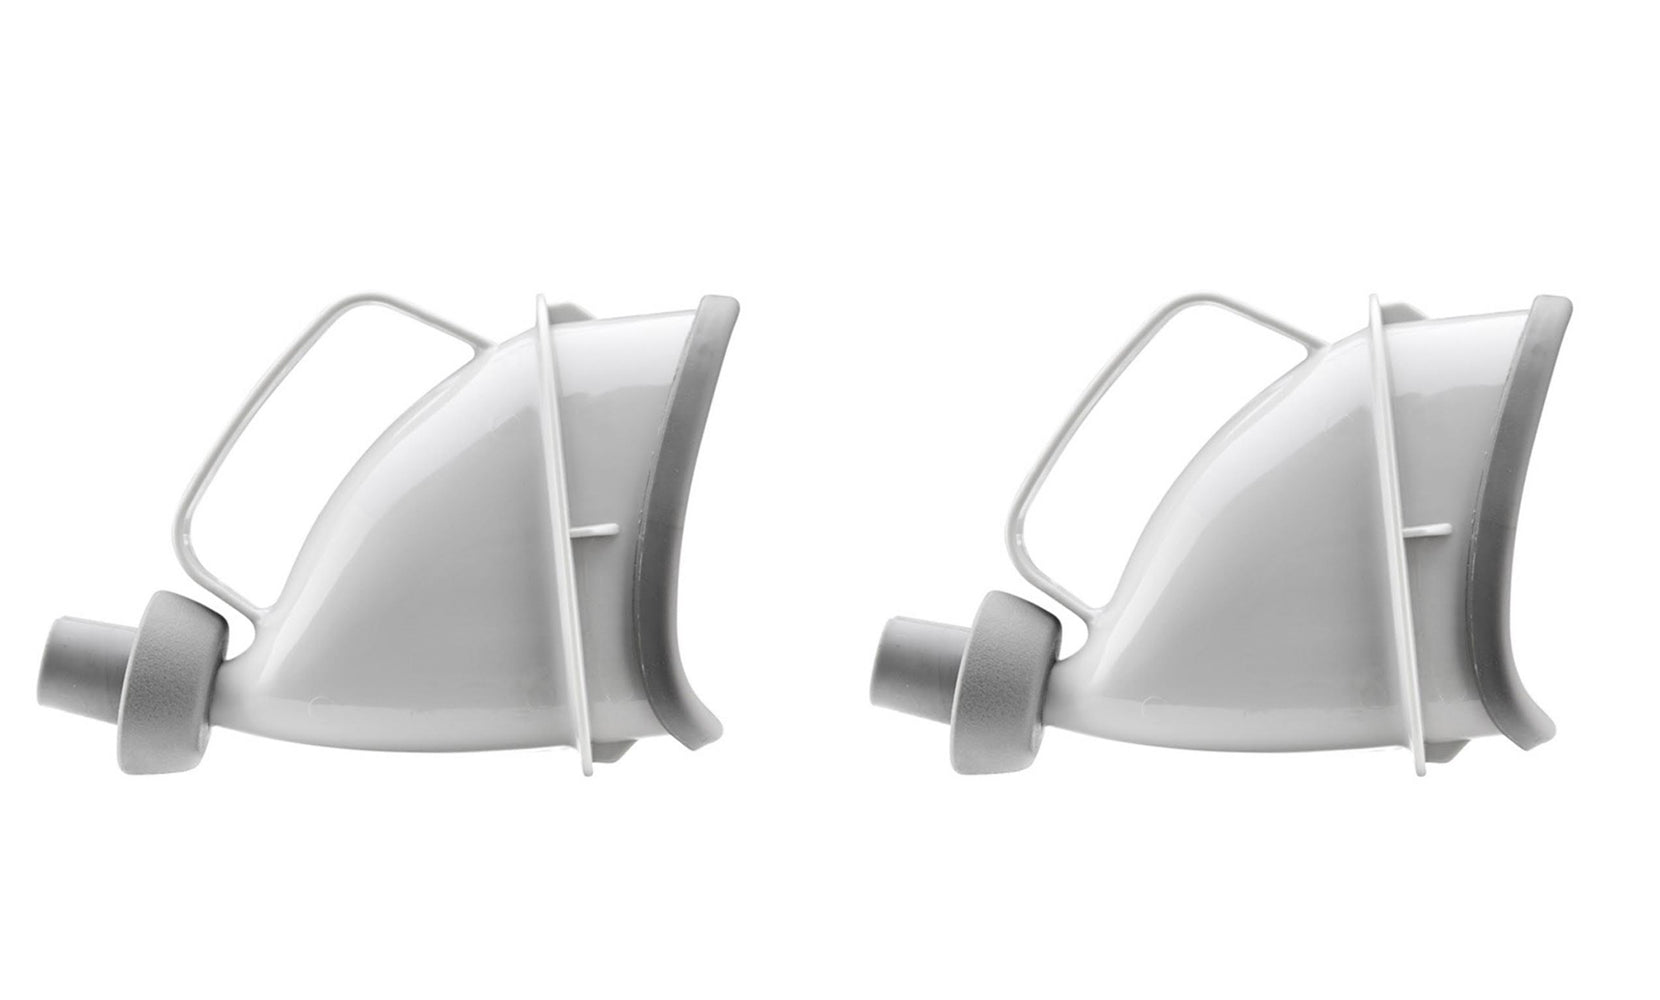 Portable Vehicle or Outdoor Adult Urinal (1 or 2-Pack)